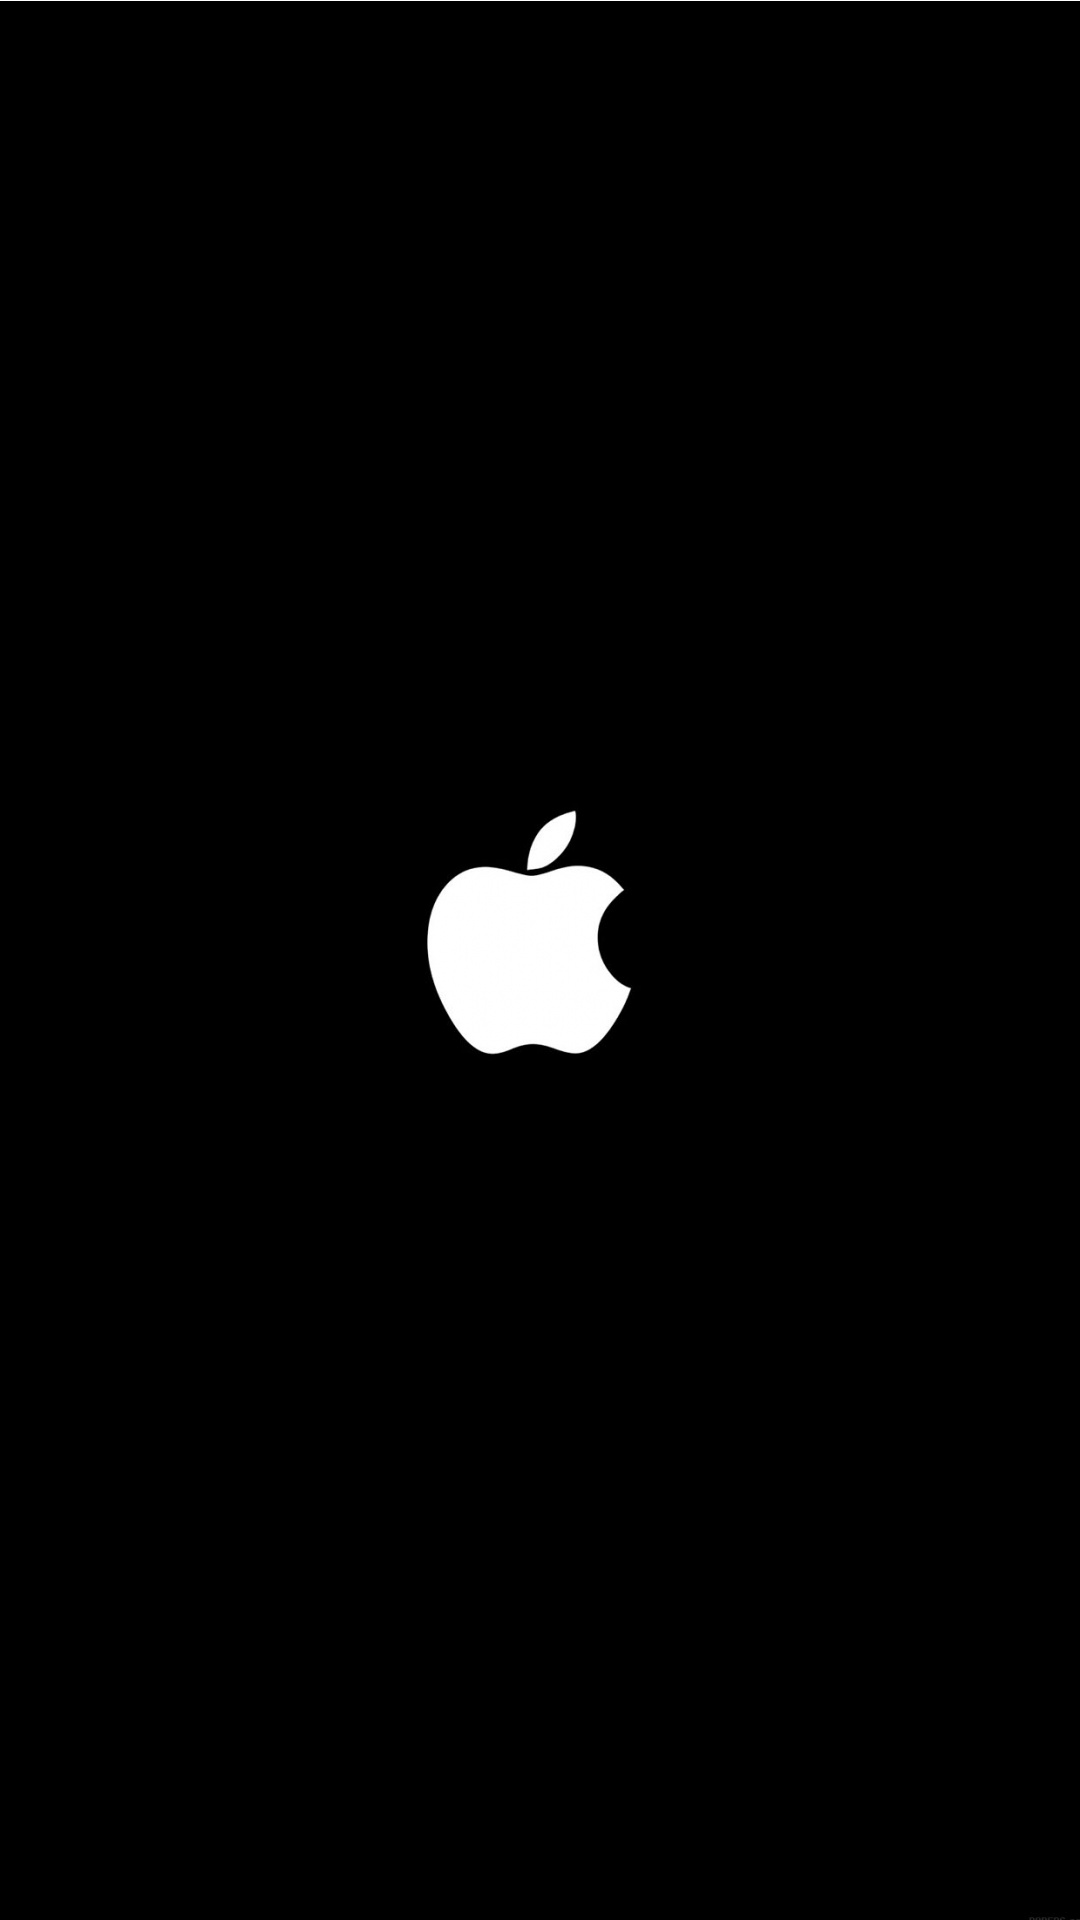 Apple-Black-1080-x-1920-wallpaper-wpc9002298